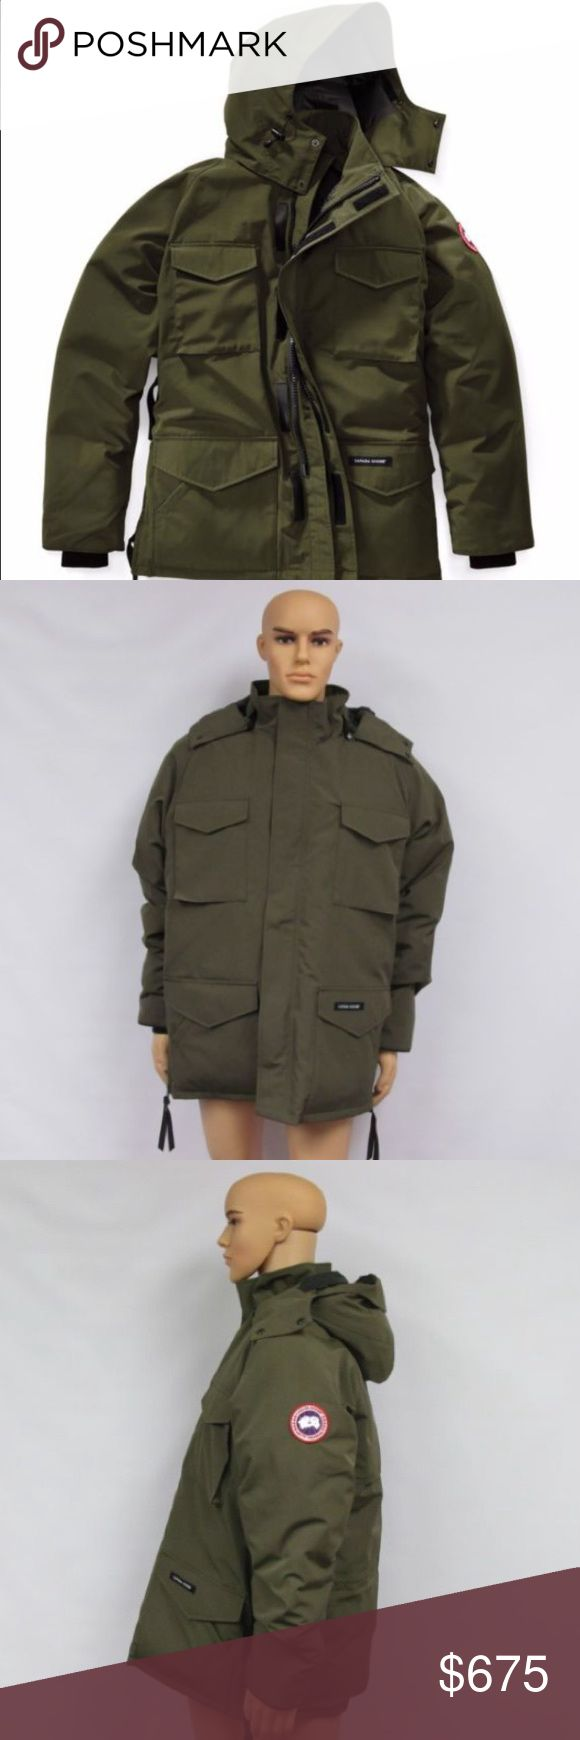 Authentic MENS Canada Goose Parka size L Authentic Canada Goose Constable Parka in Military Green, size LARGE. In pristine like new condition! $550 on  Canada Goose Jackets  Coats